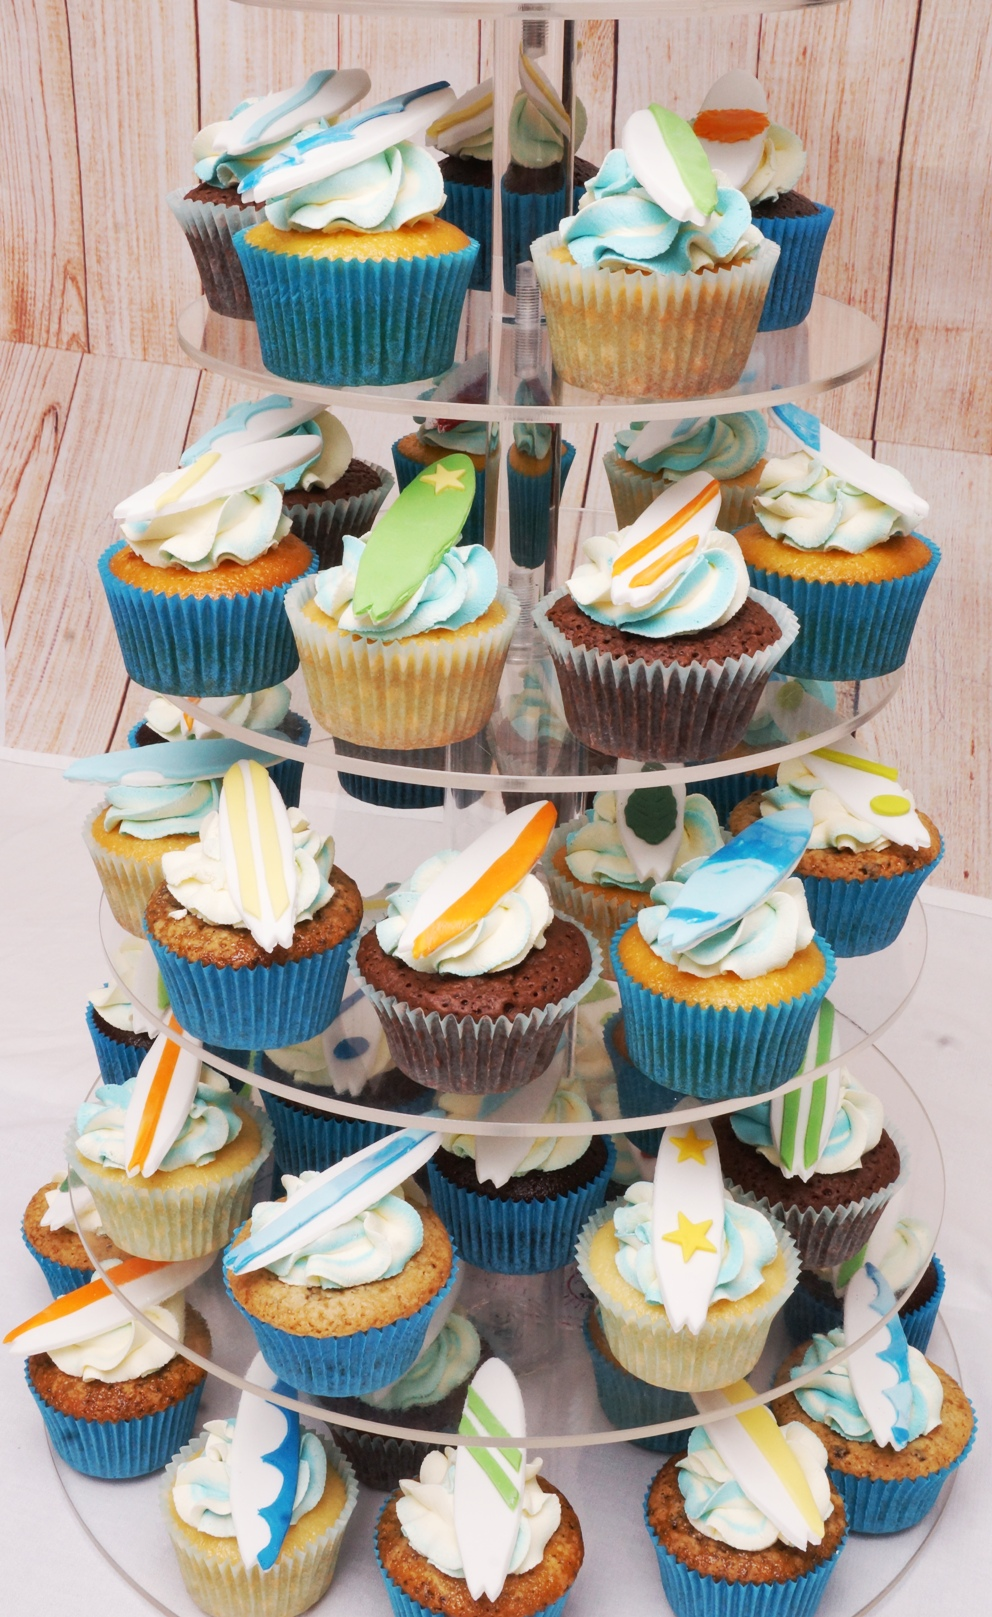 Surf Board Cake and Cupcakes 3